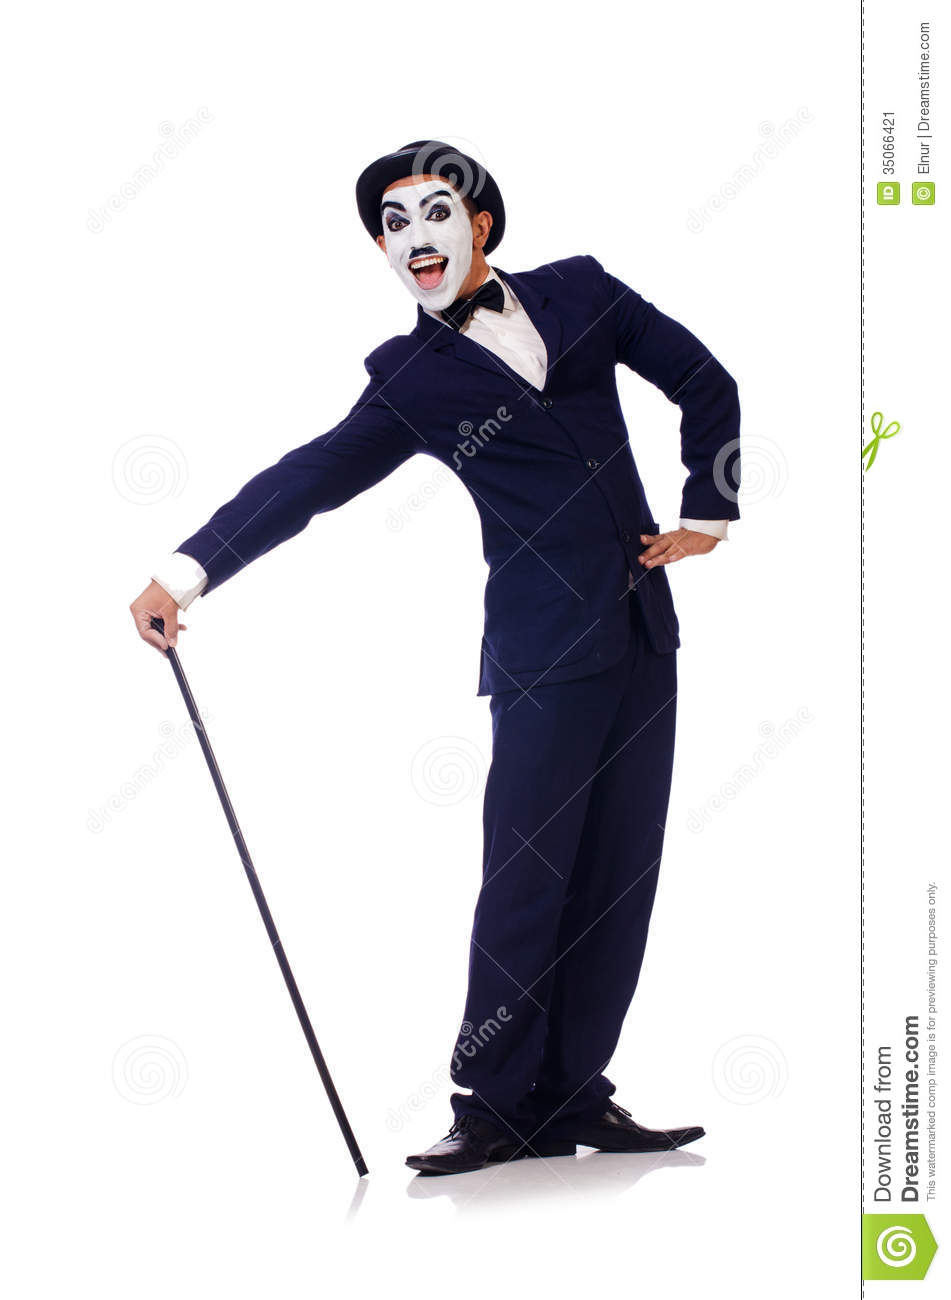 Personification Of Charlie Chaplin Stock Image.